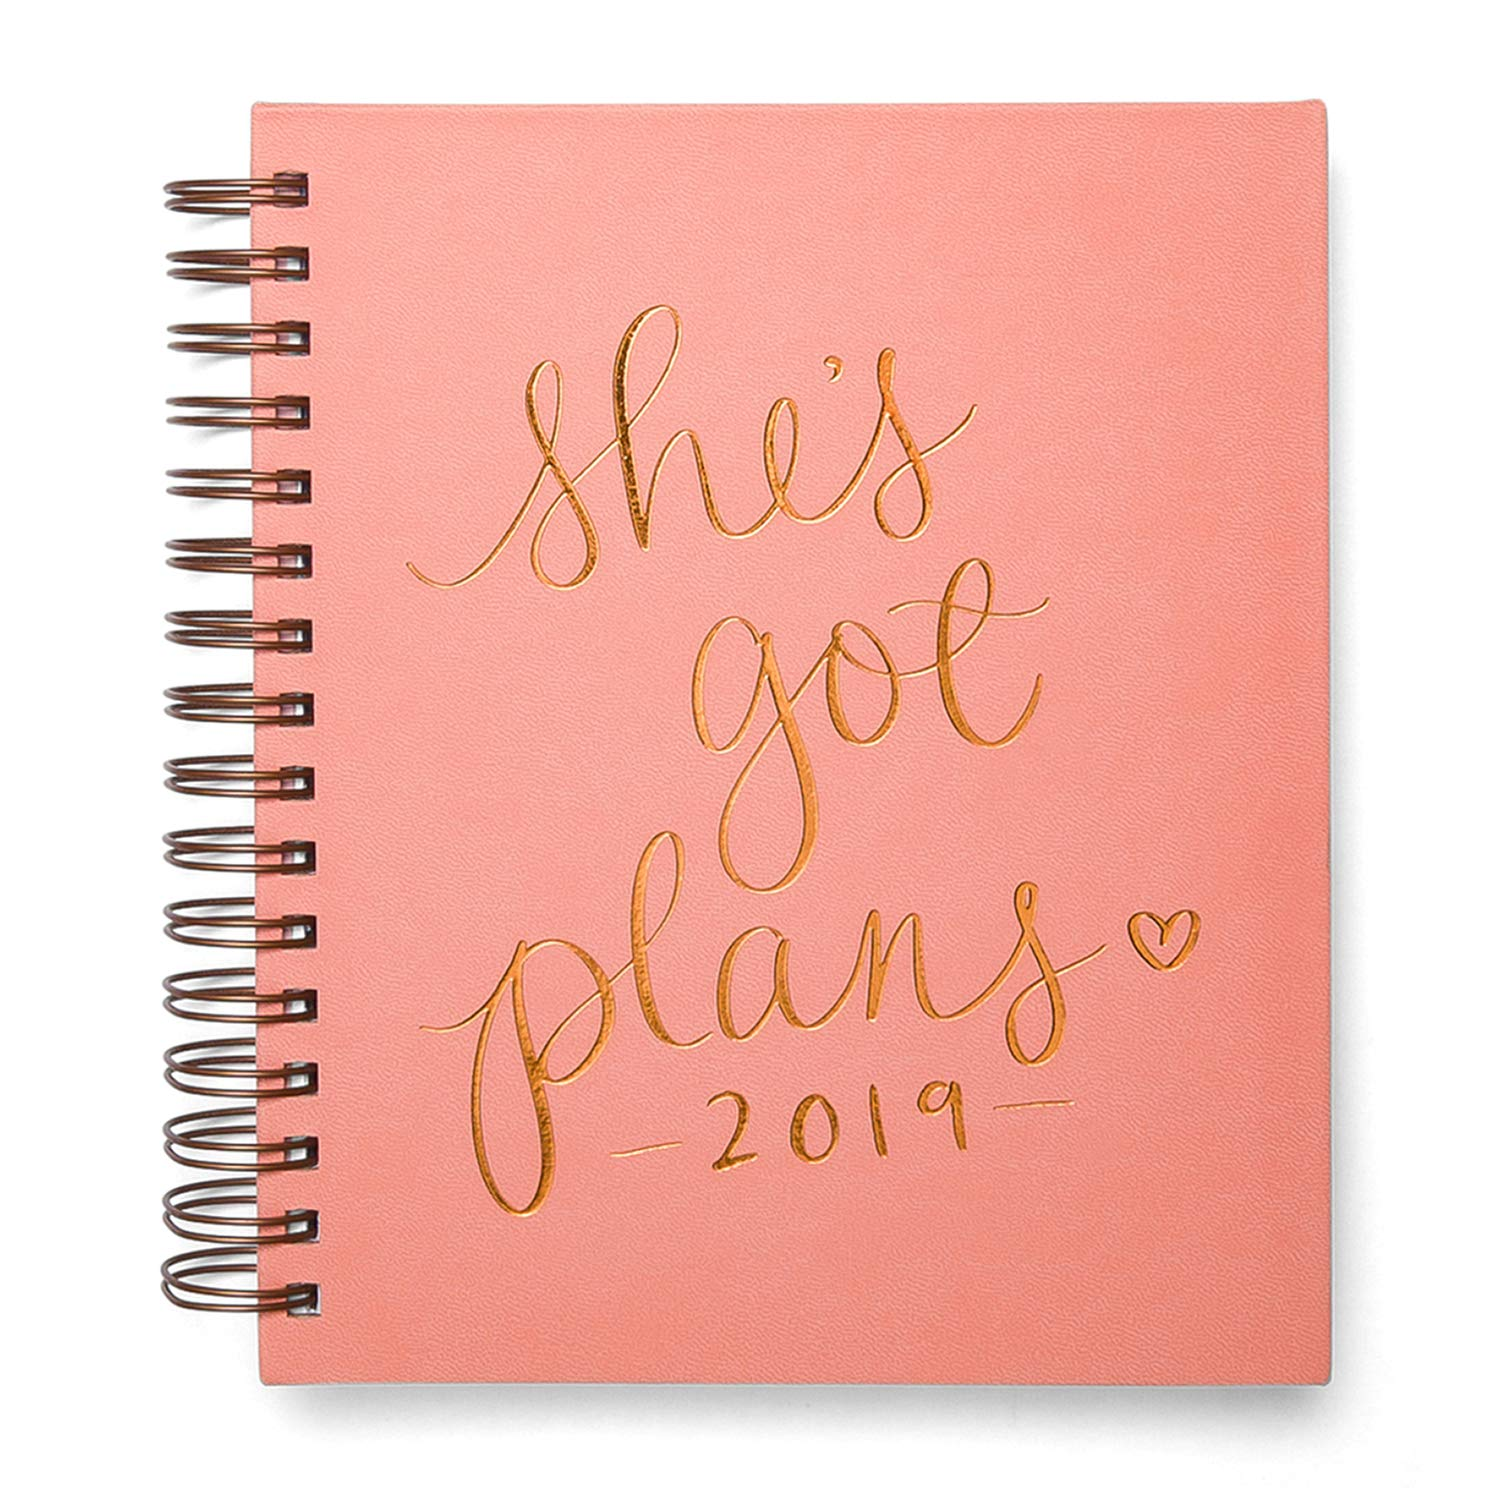 """Amazon.com : 2019 Eccolo Spiral Agenda Planner, """"She's Got Plans""""  Hardcover, Sticker Sheets, Full Color Graphics and Quotes. 7.25 x 8.75 :  Office Products"""